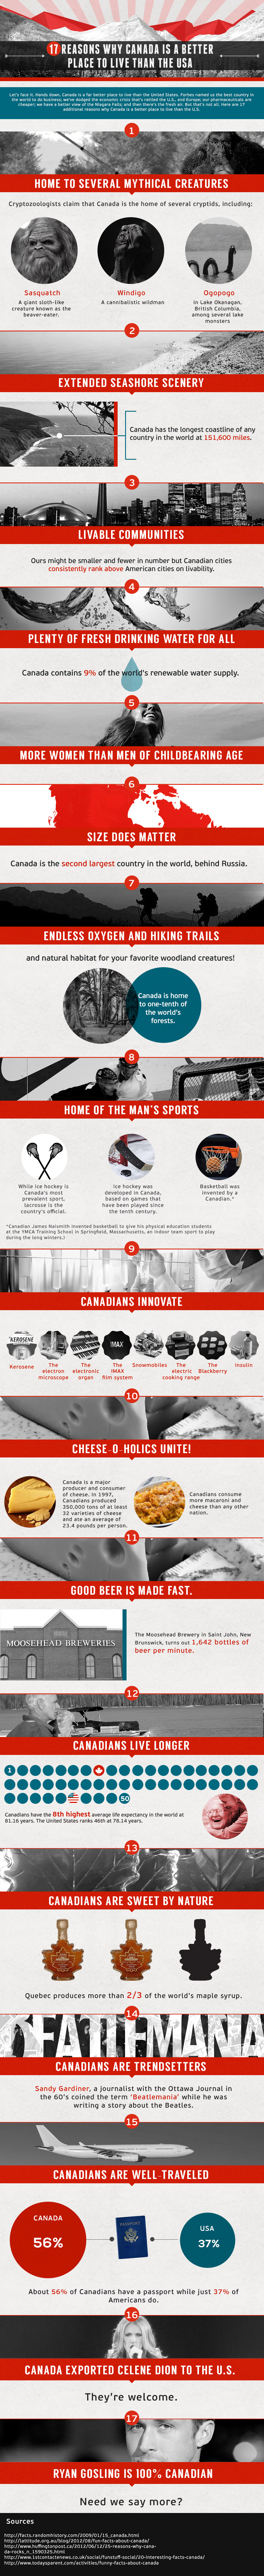 canada-vs-us-infographic